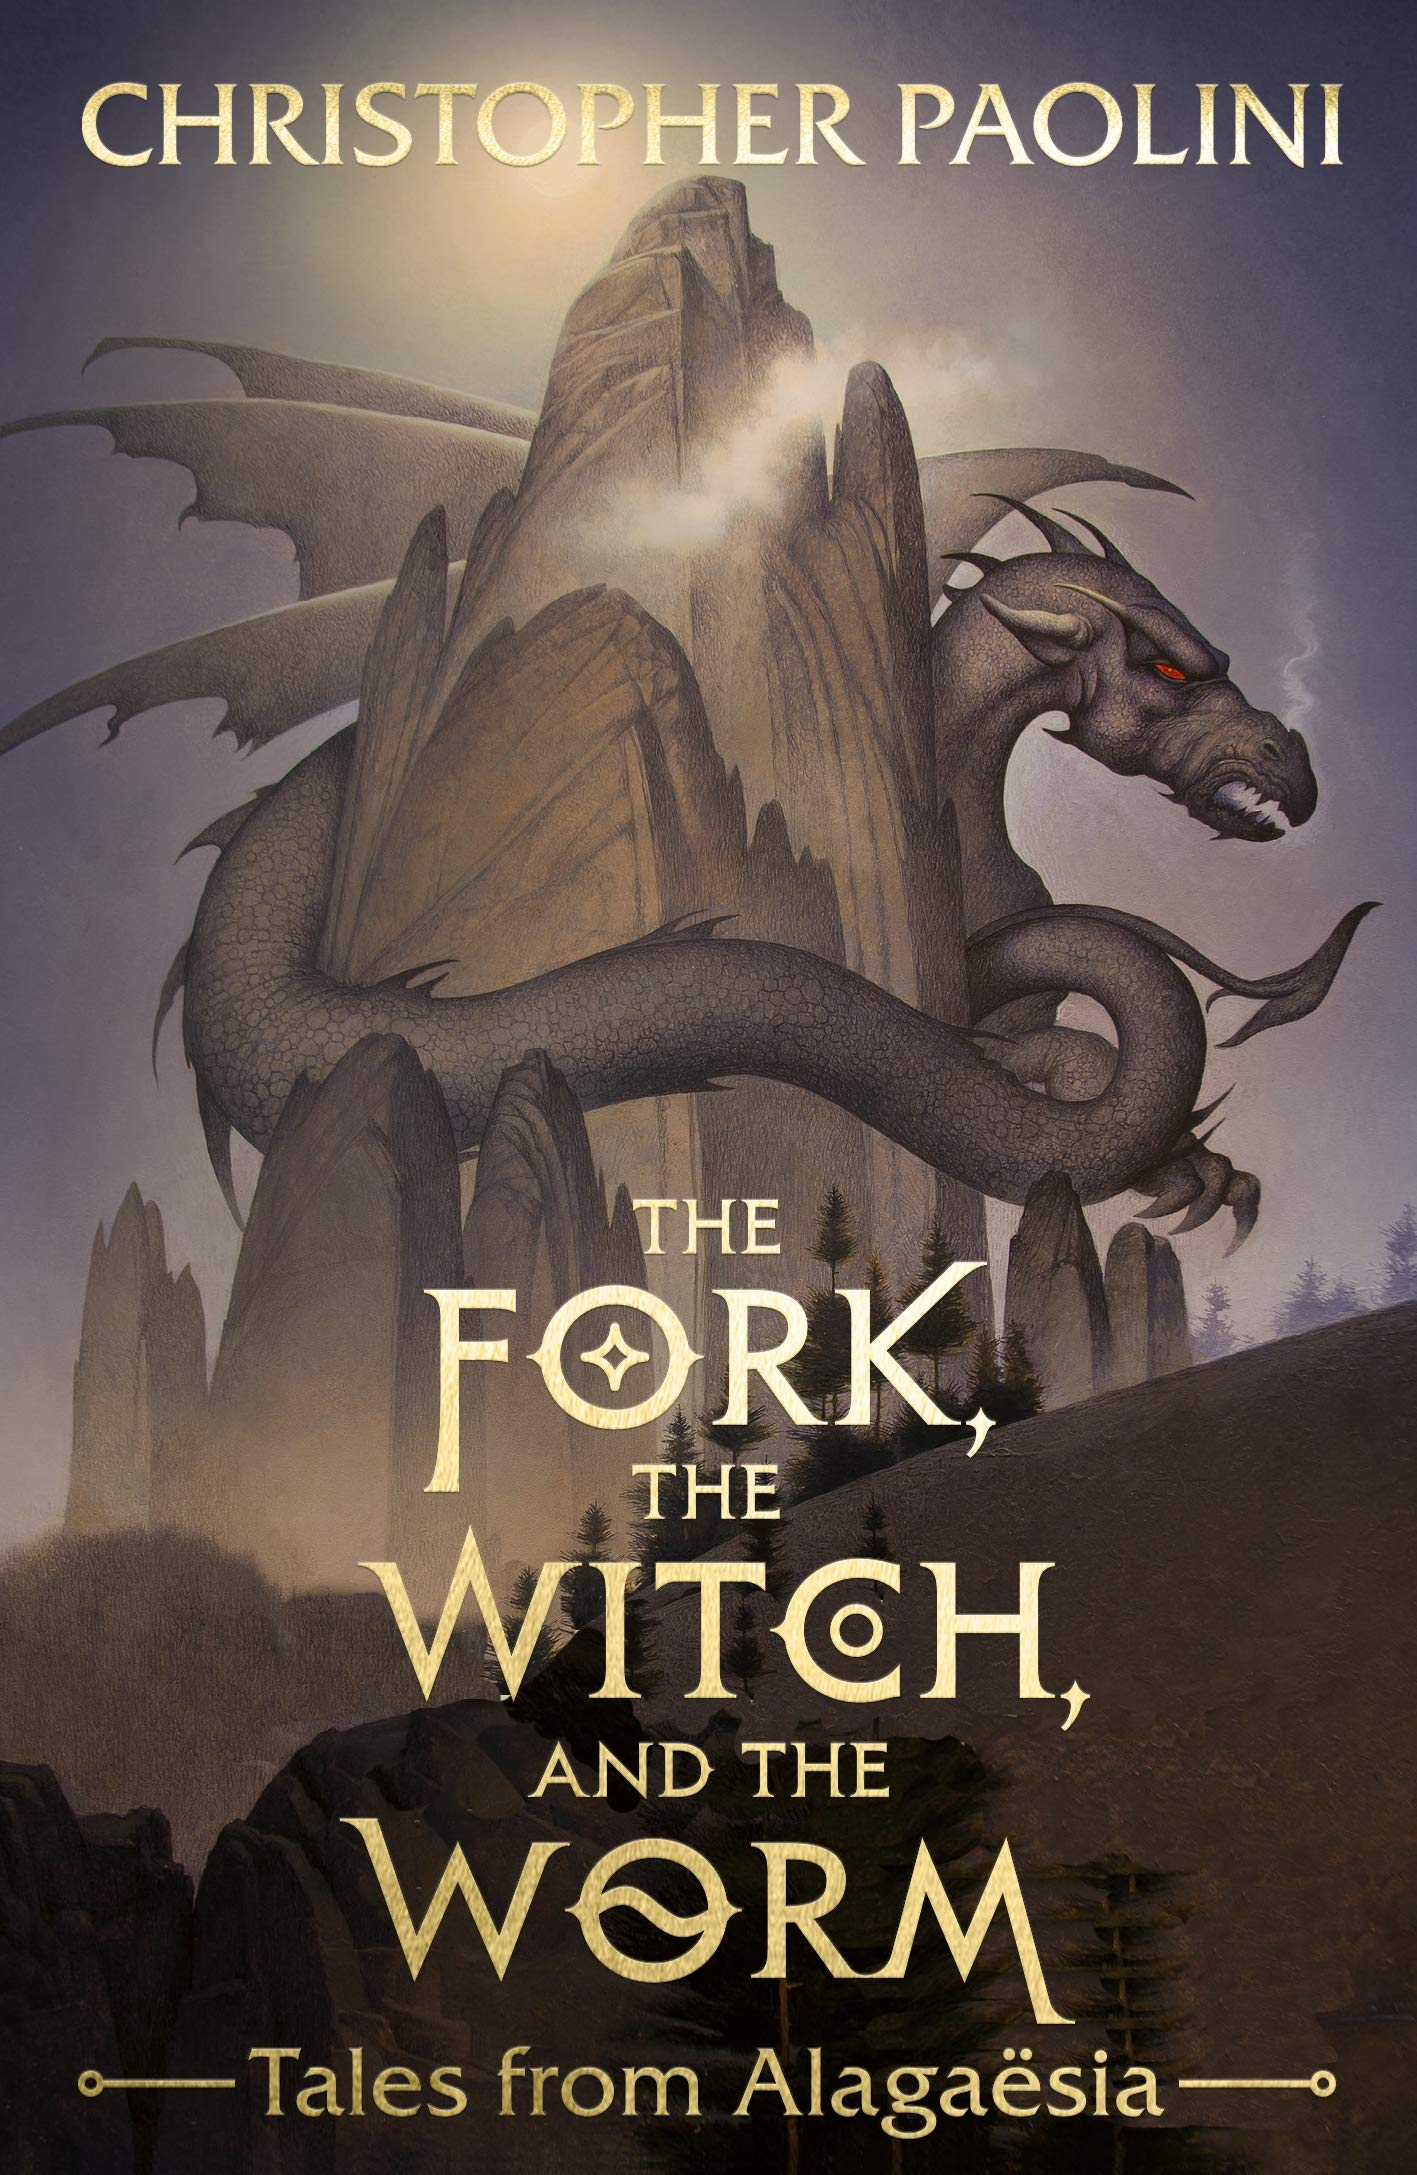 The Fork the Witch and the Worm | Youthopia